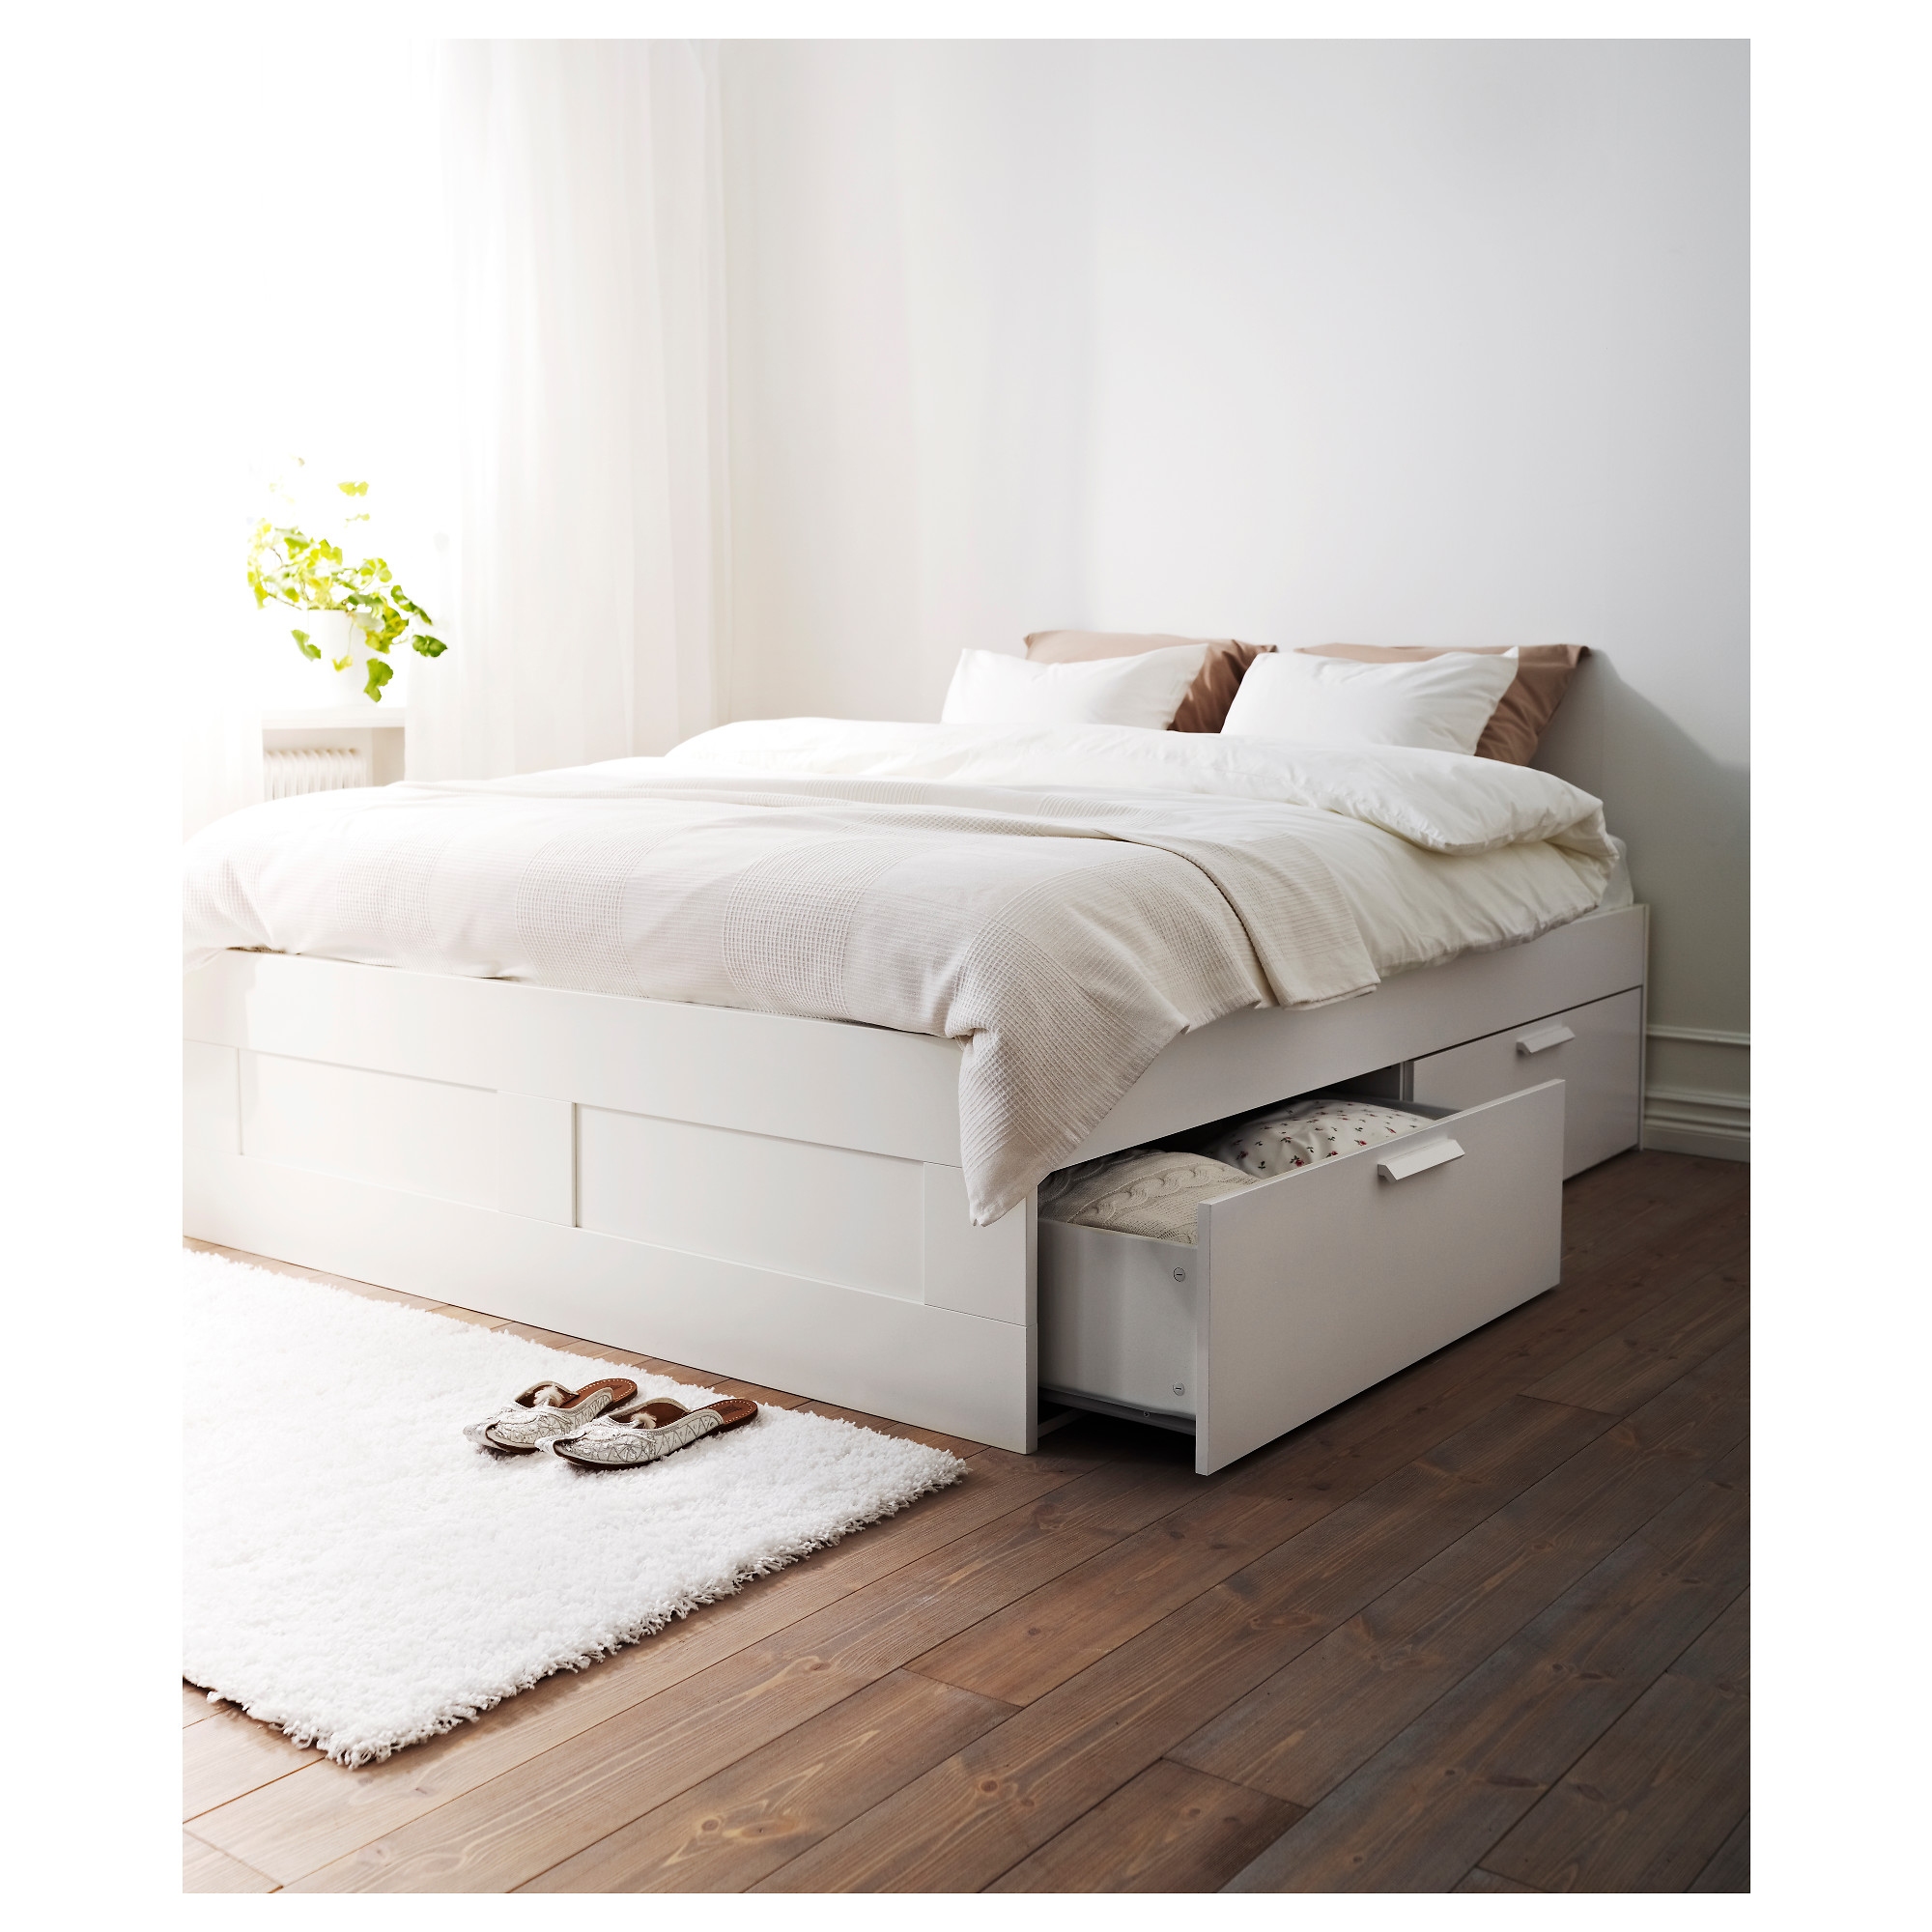 Brimnes Bed Frame With Storage Luroy Queen Ikea Hong Kong And Macau